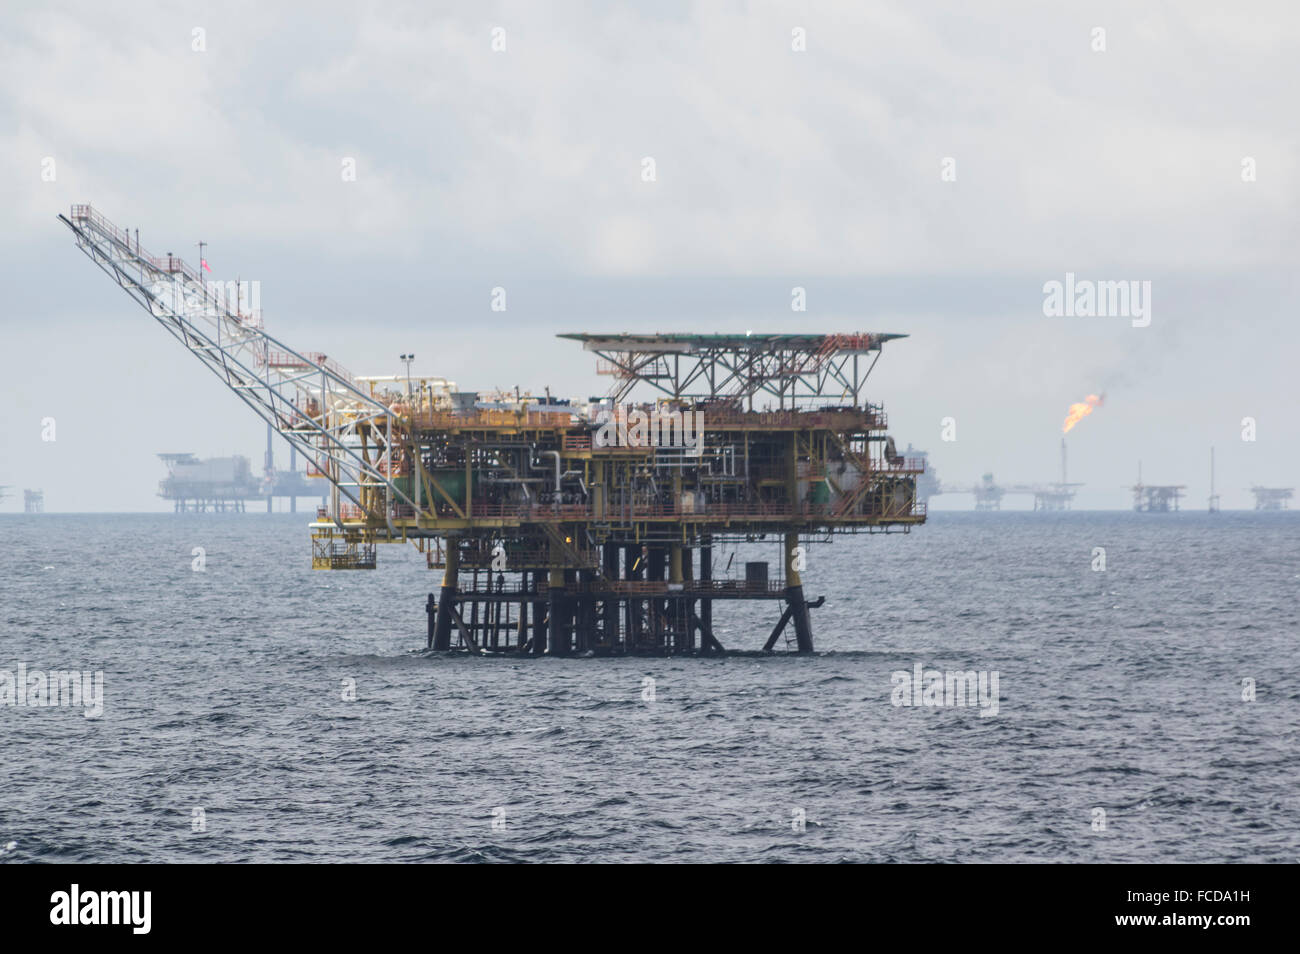 Oil rig off the coast of Brunei Darussalam, in the South China Sea. Many more offshore oil rigs in the background. Stock Photo